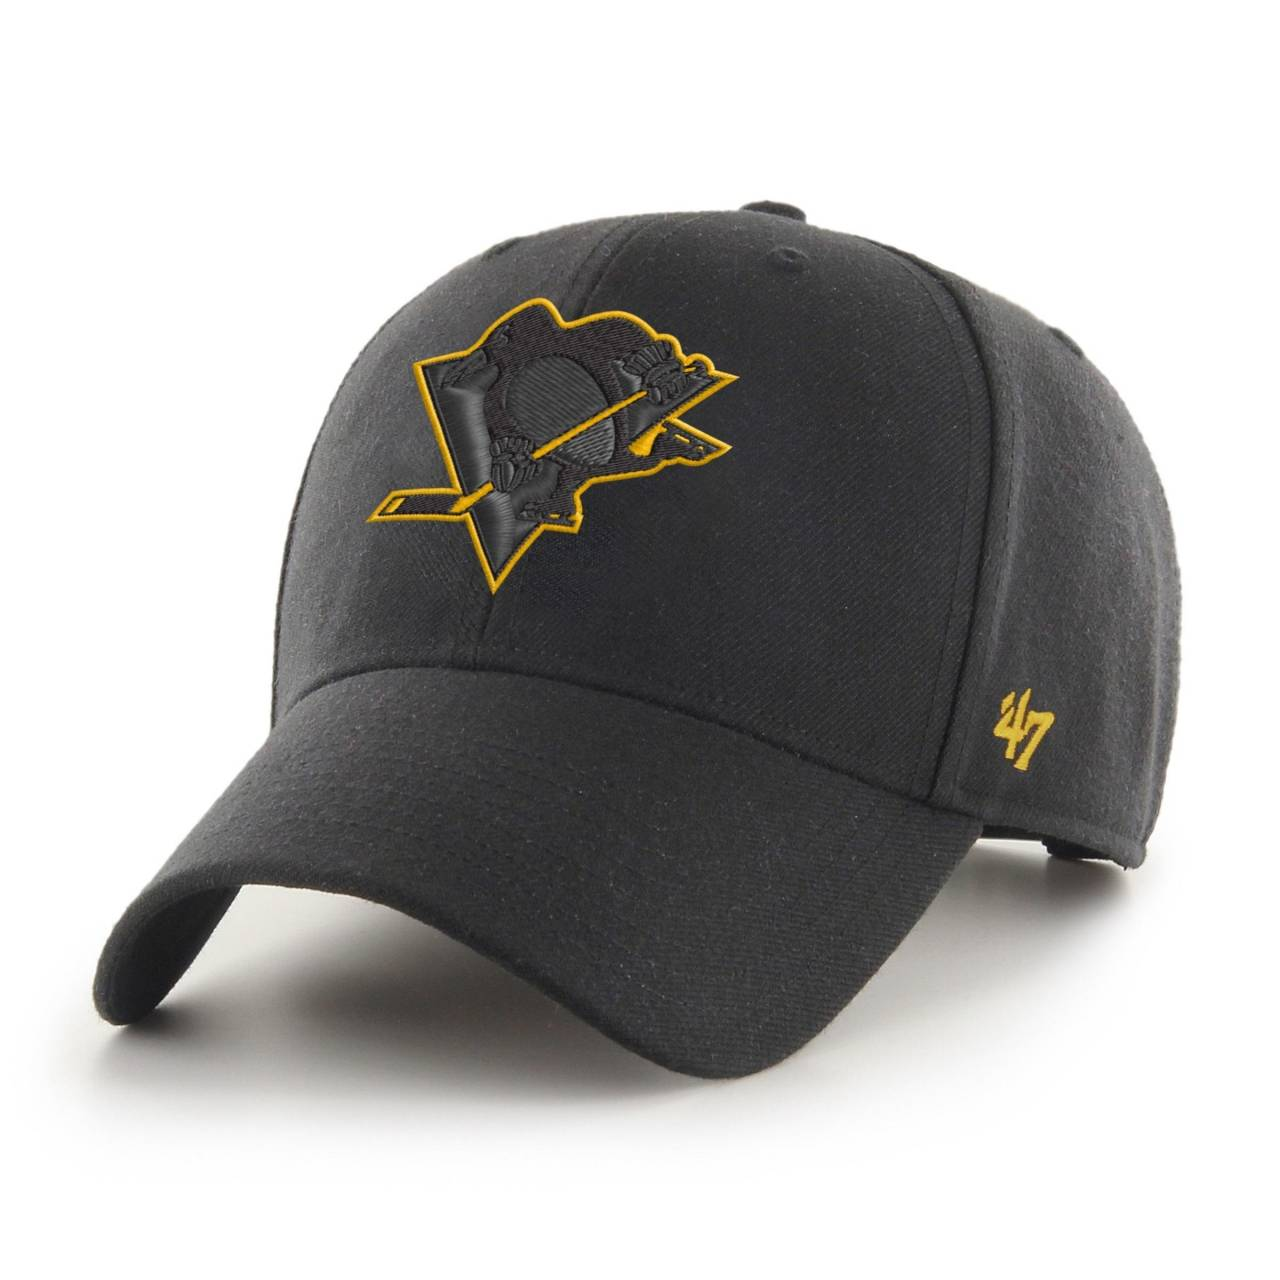 NHL PITTSBURGH PENGUINS '47 MVP BLACK SNAPBACK